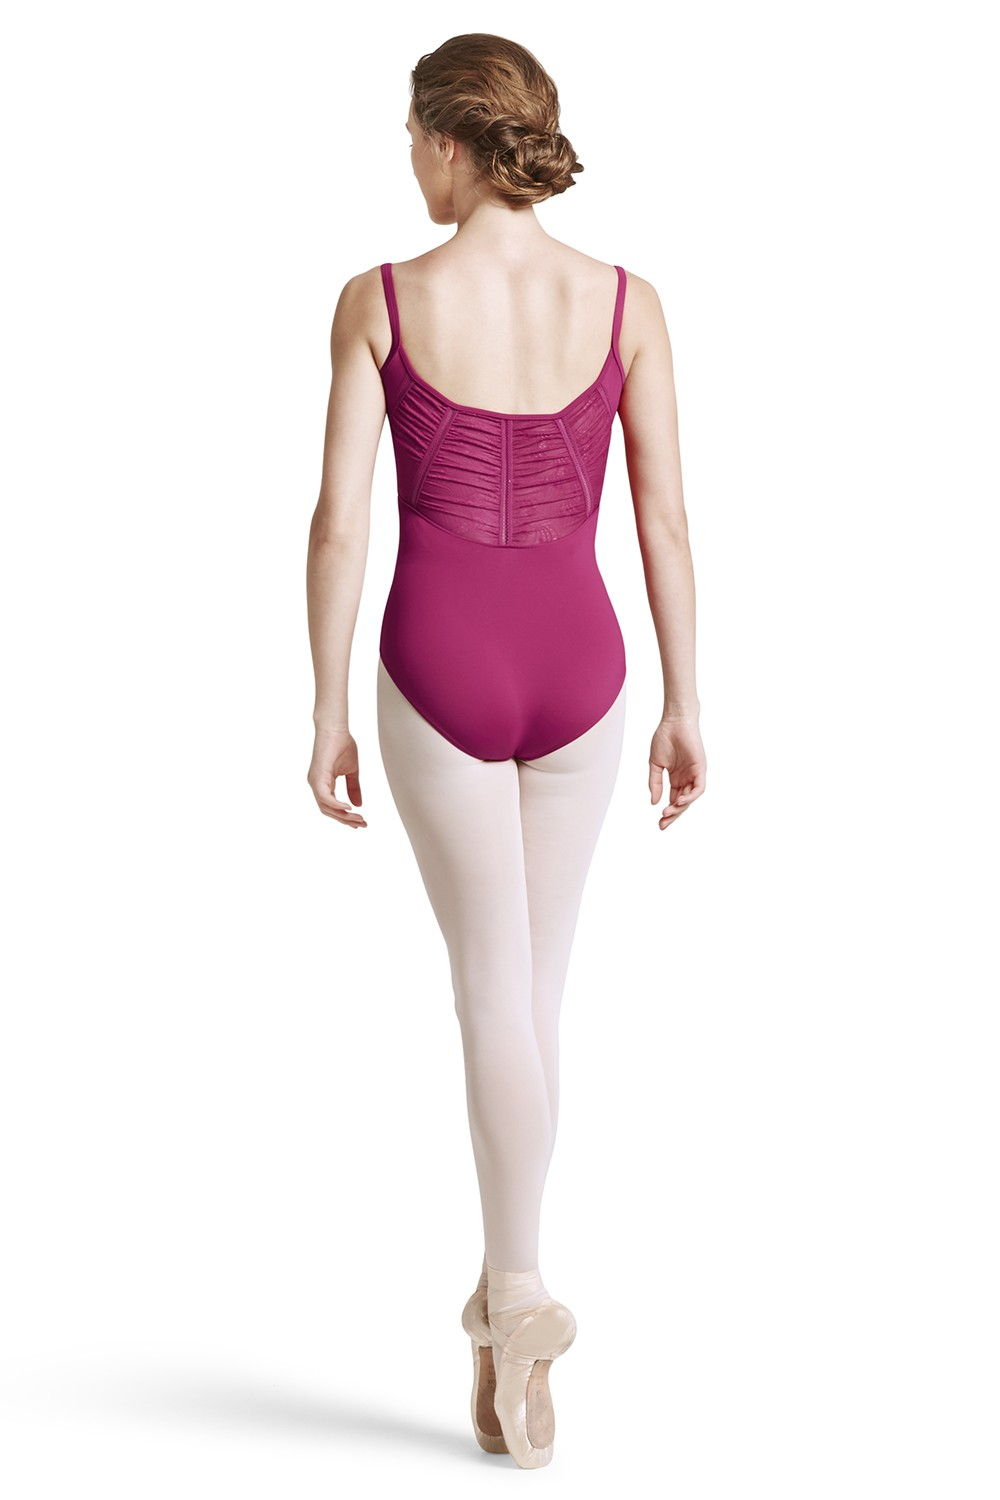 Anila Women's Dance Leotards